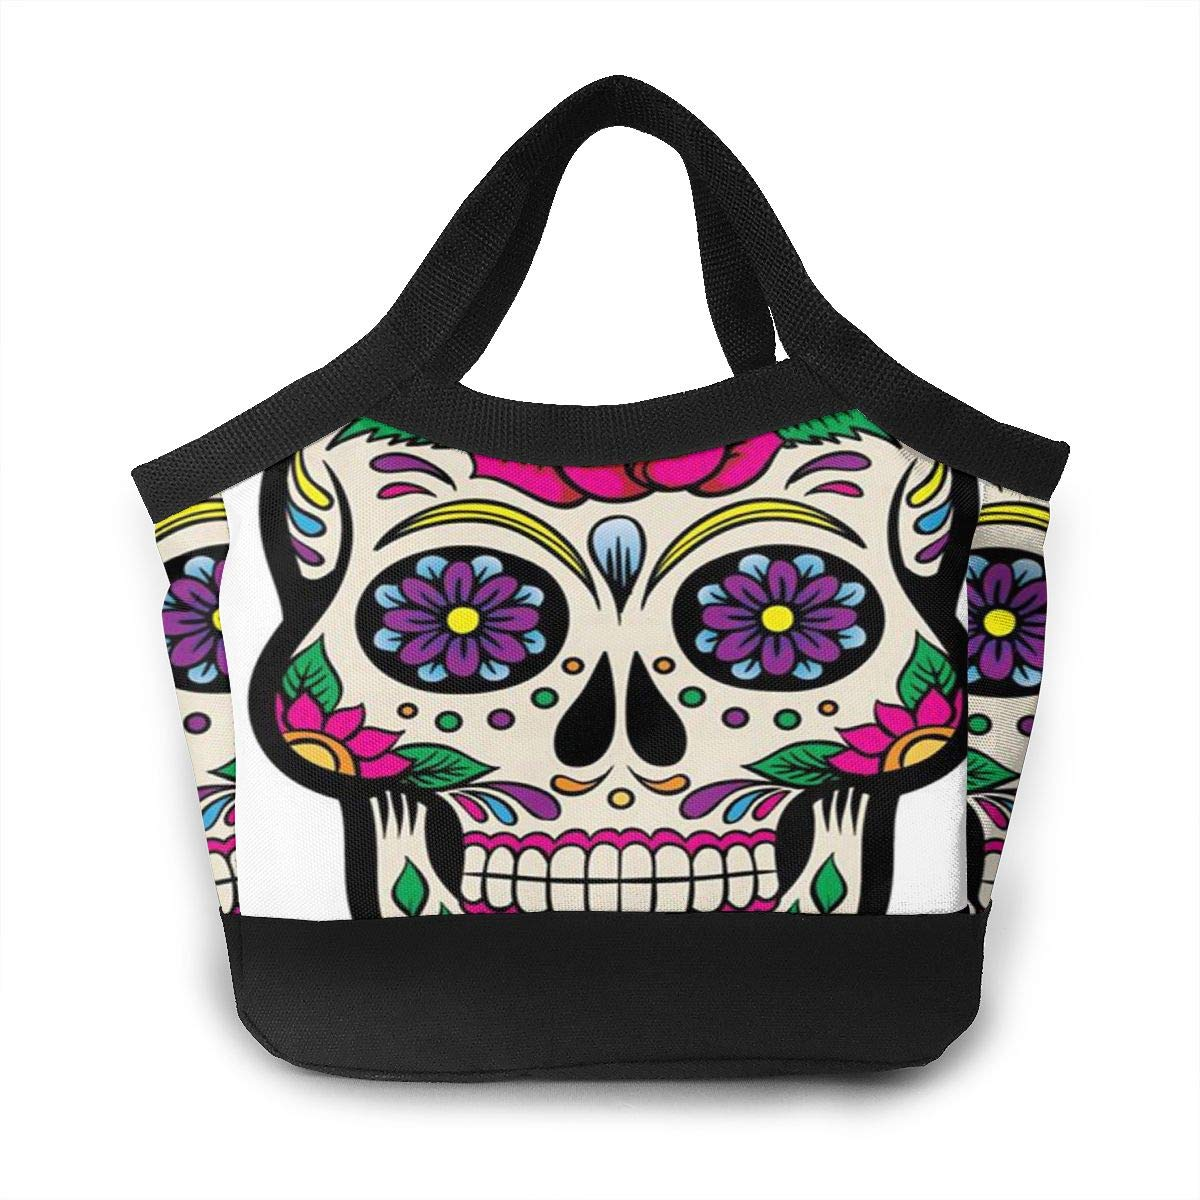 Lunch Bag Reusable Insulated White Sugar Skull Portable Lunch Tote Bag with Zip for Women